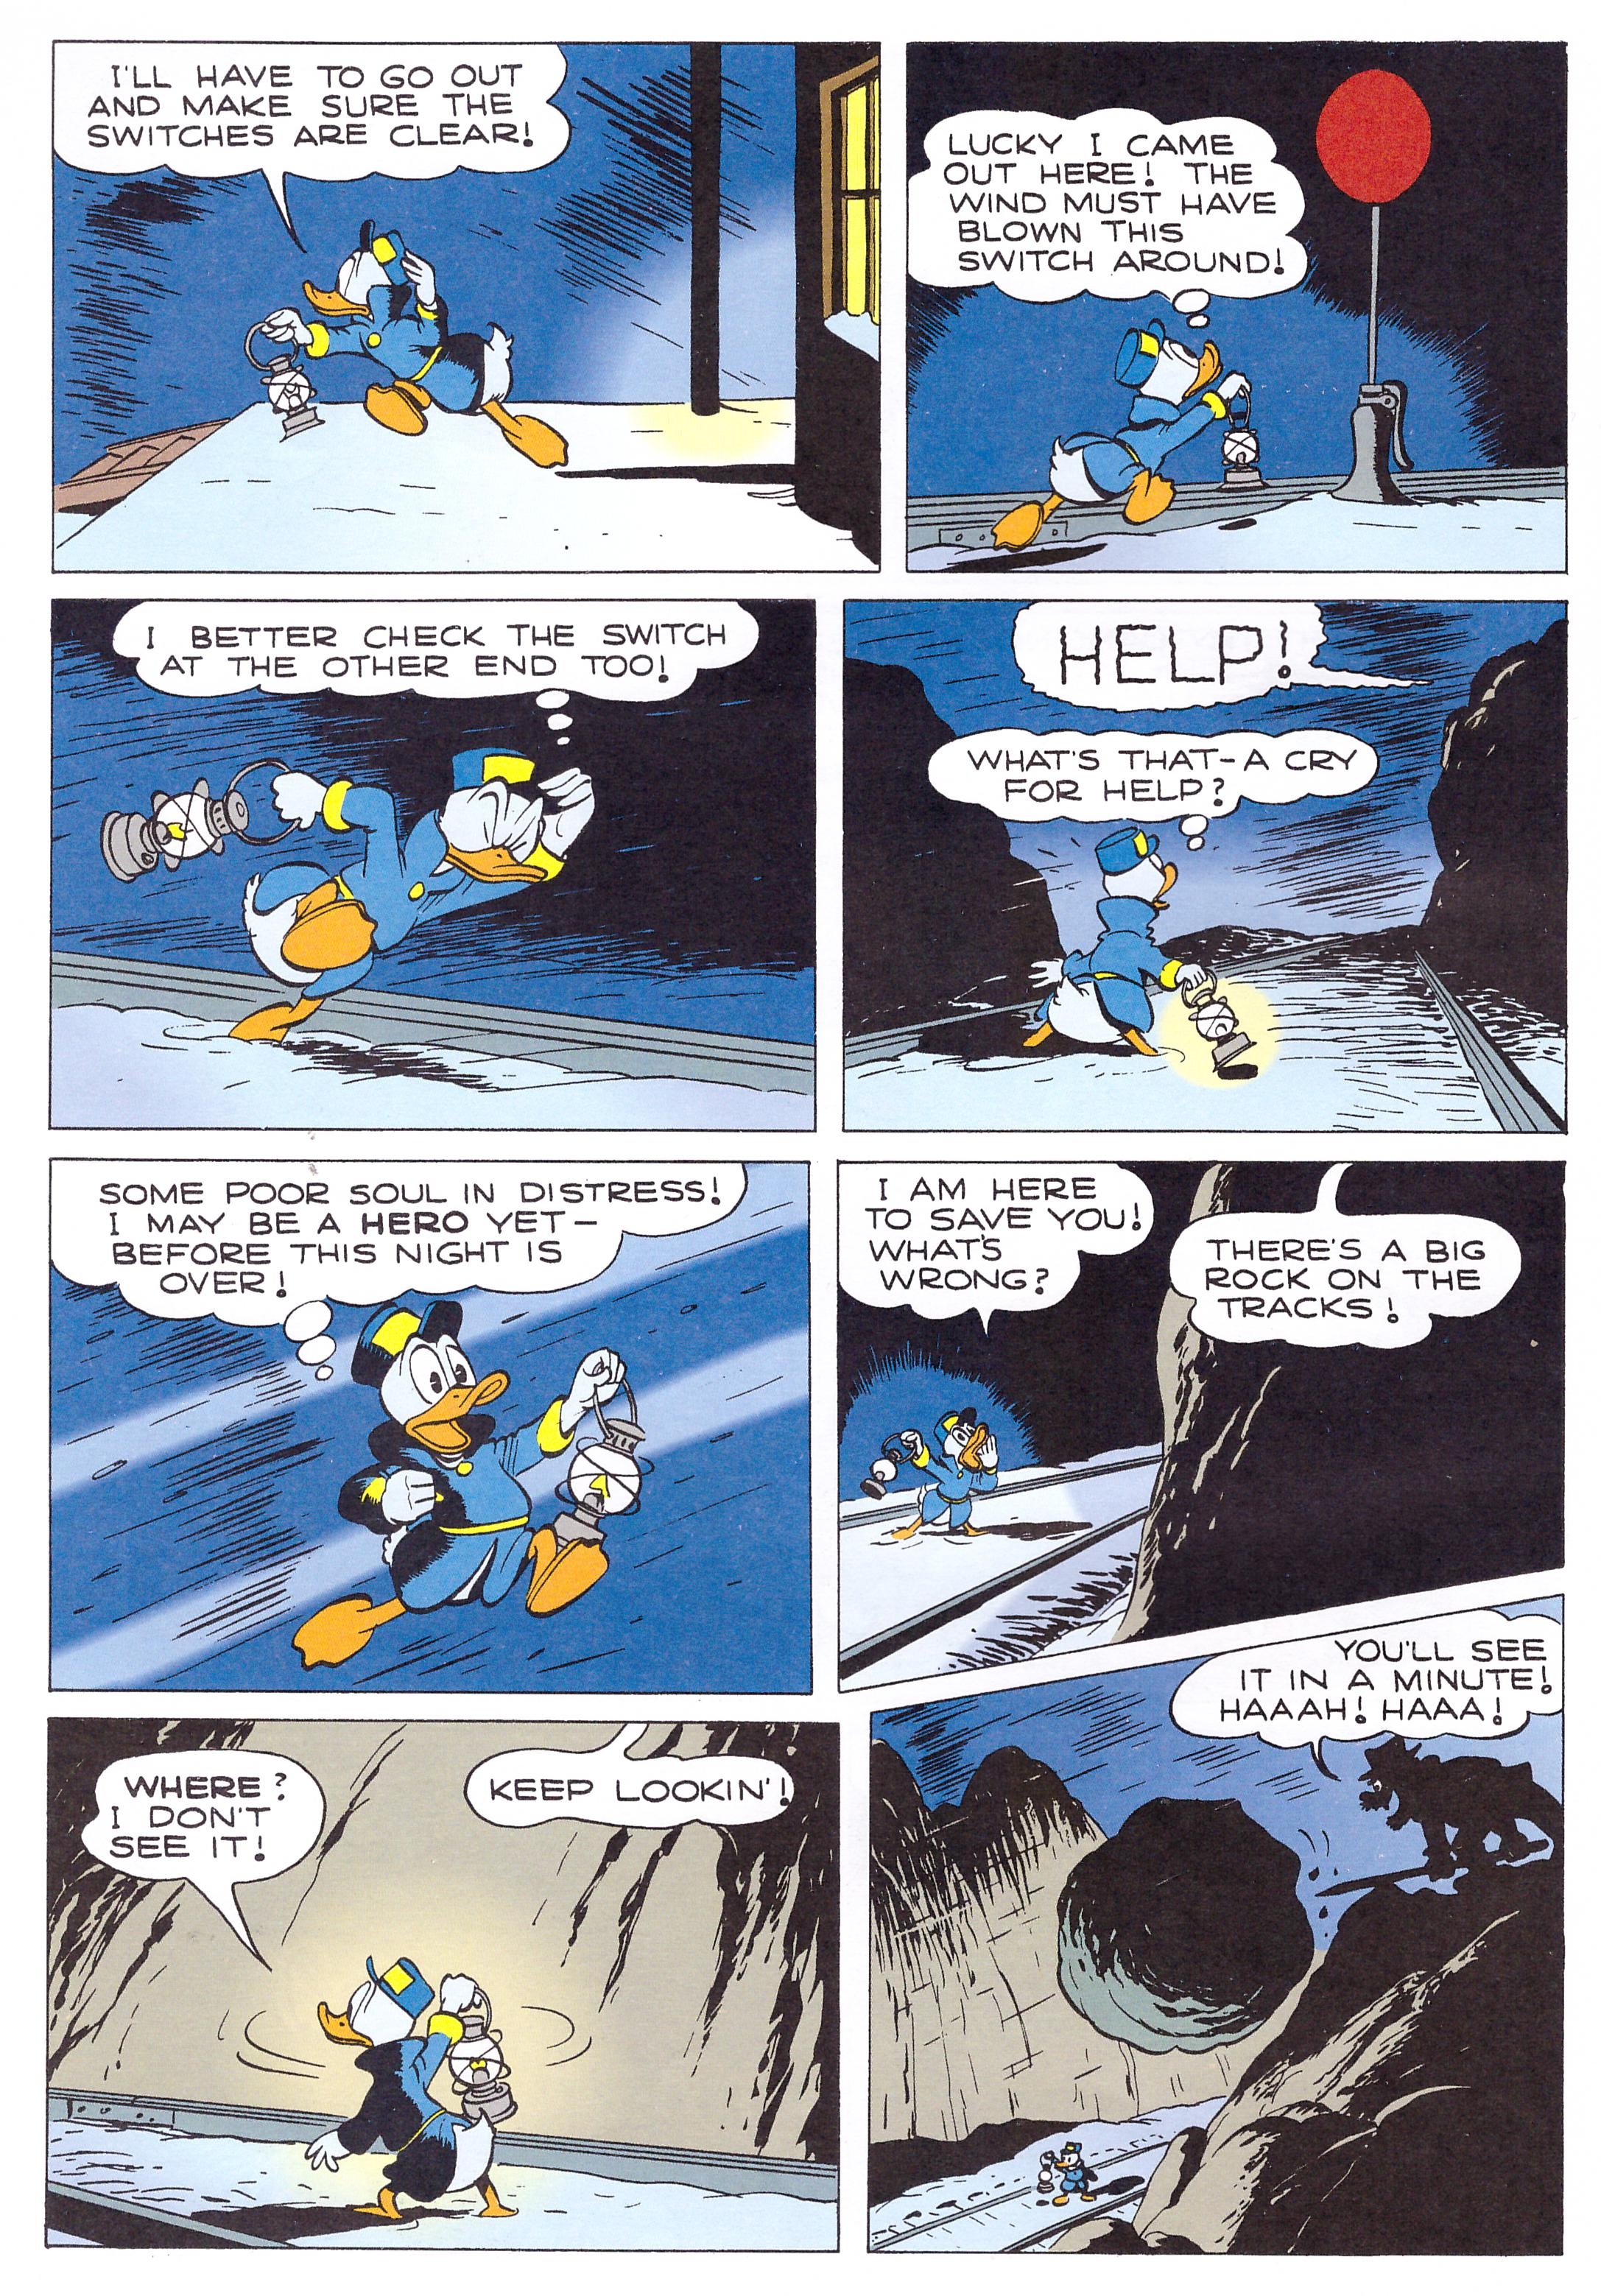 Walt Disney Comics & Stories by Carl Barks 25 review